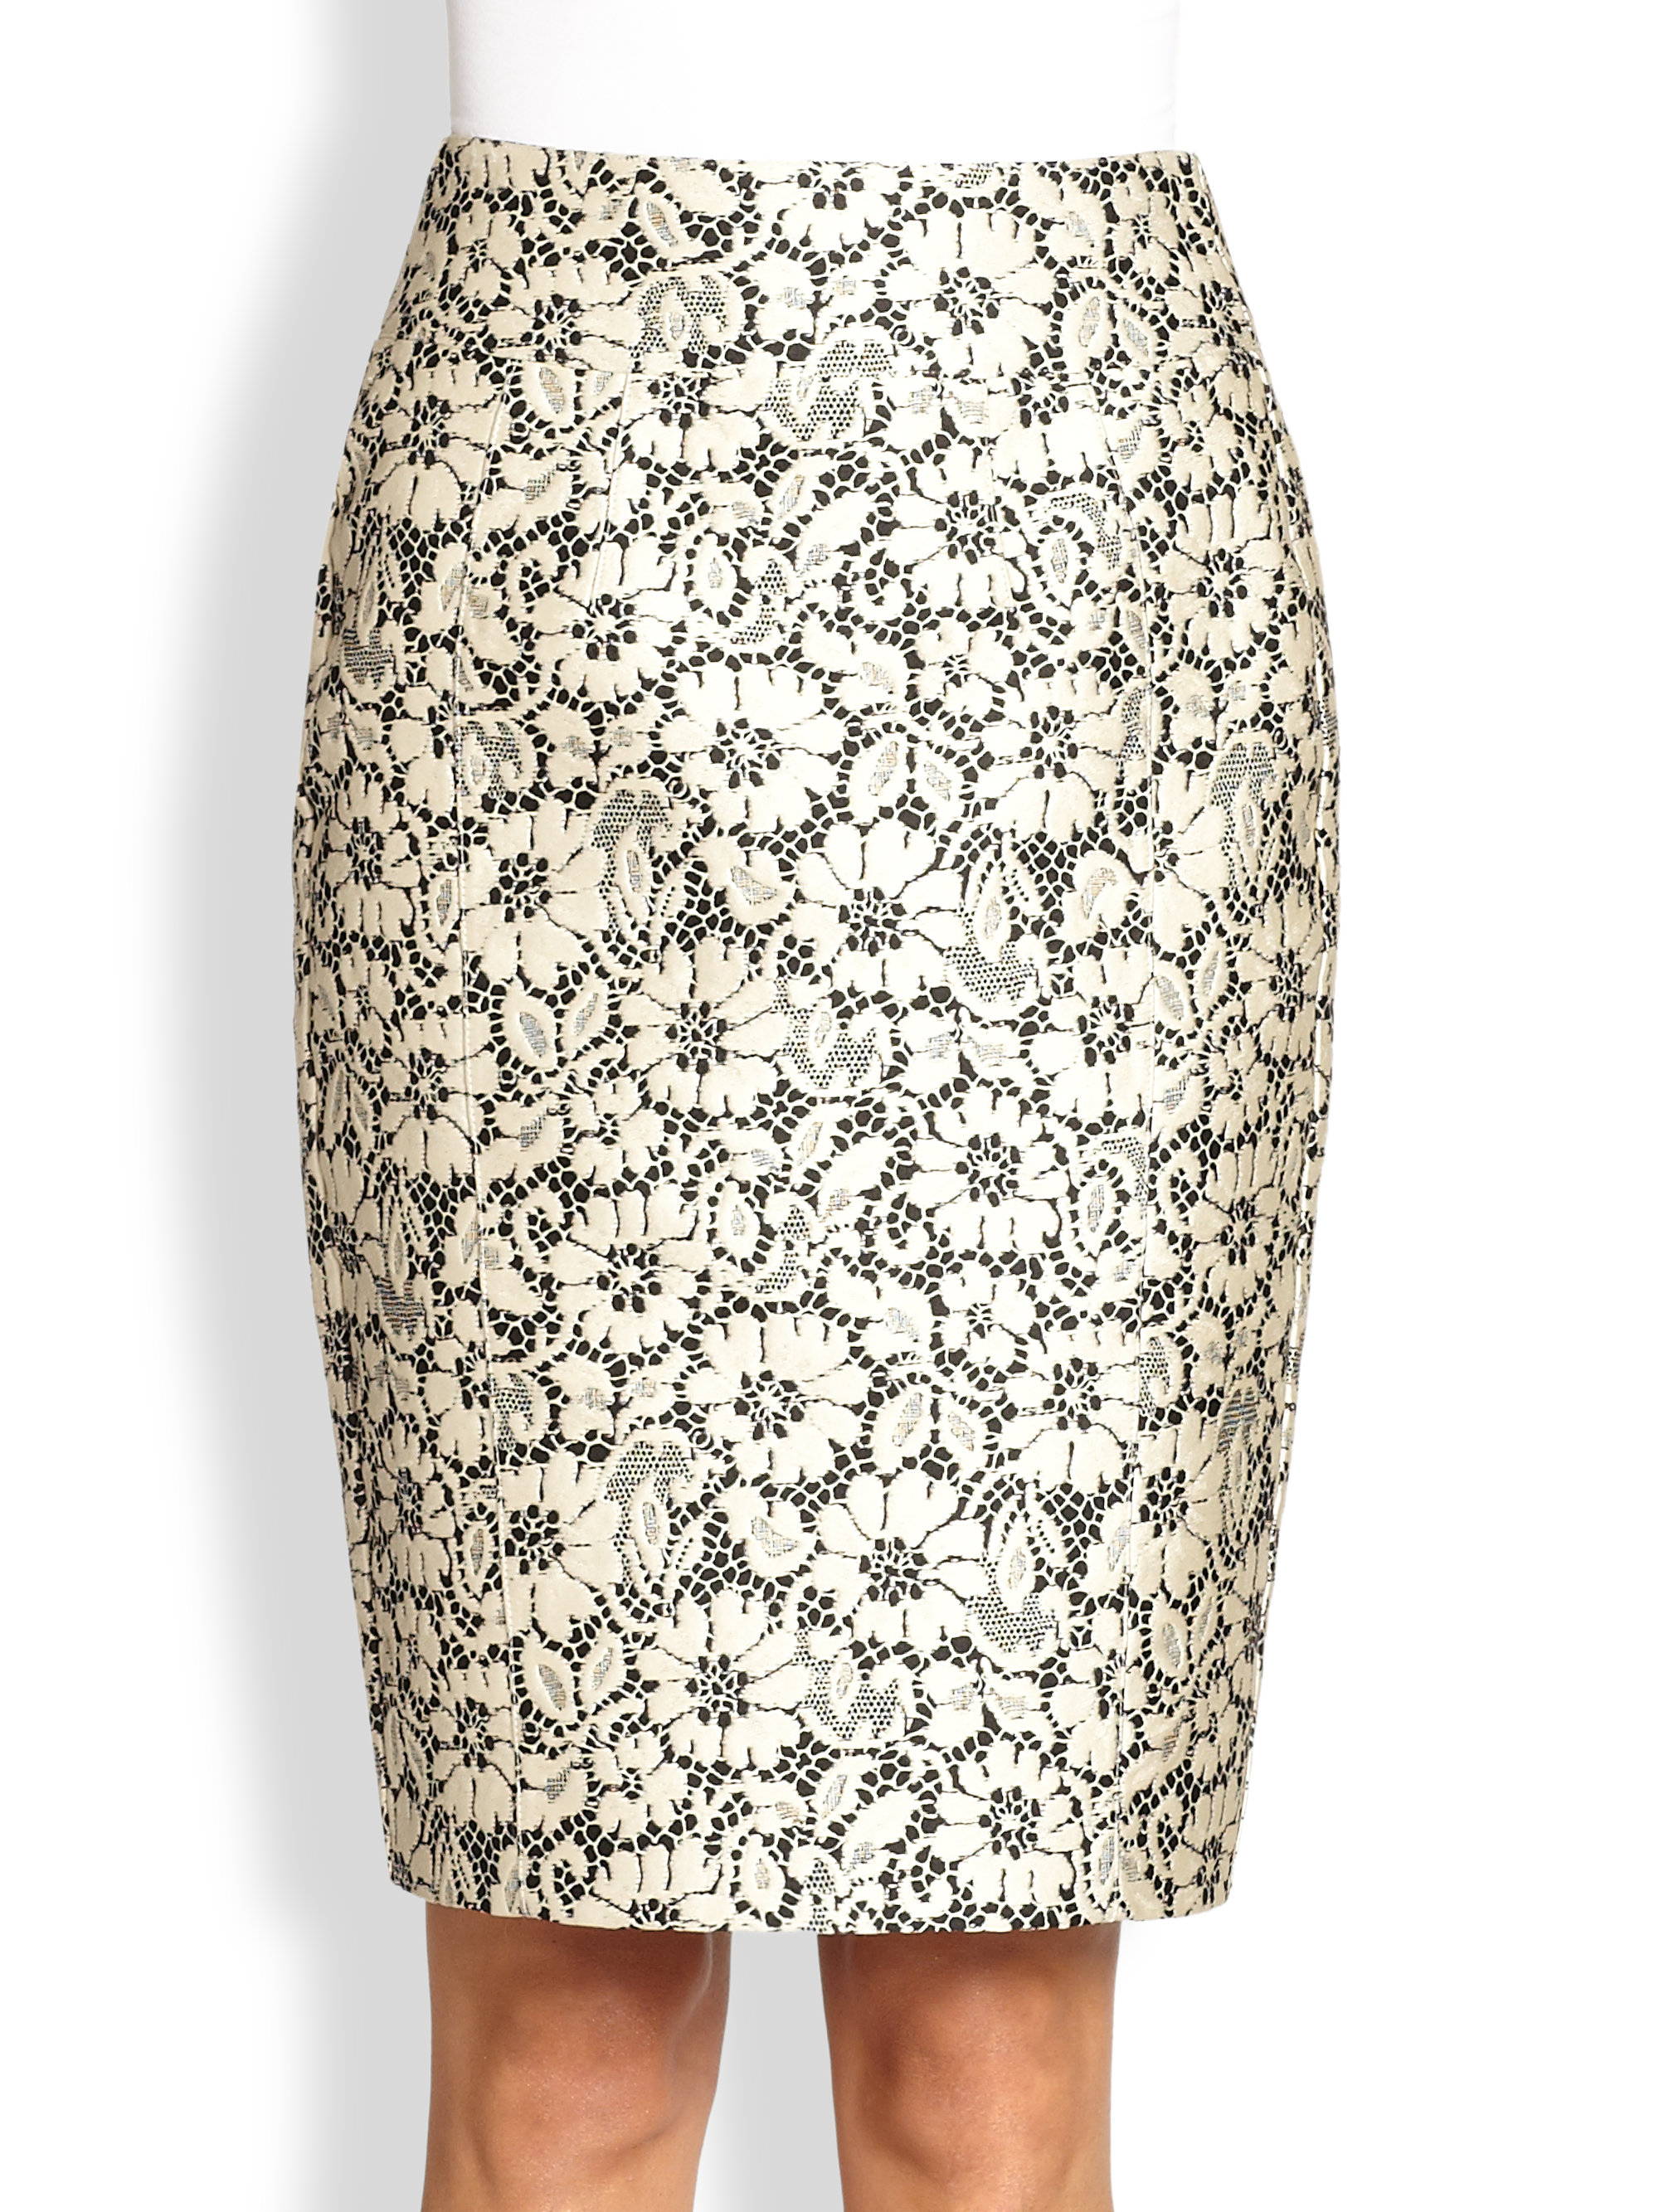 Burberry Brocade Lace Pencil Skirt in White | Lyst